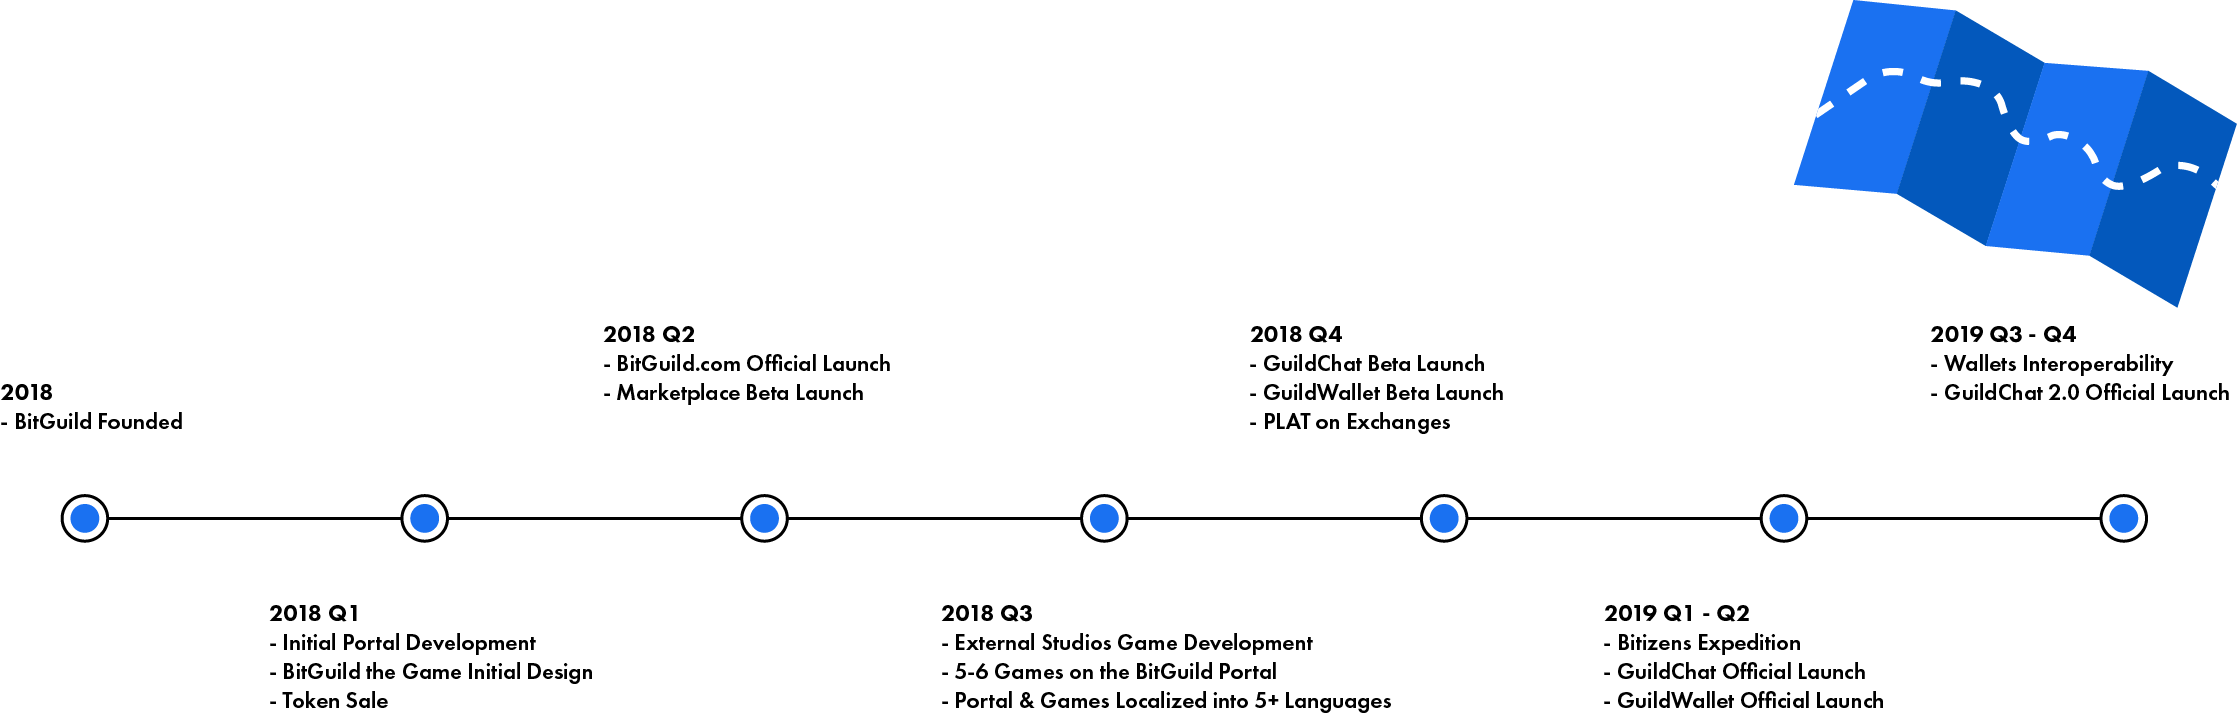 Roadmap_ItemsAsset 8.png